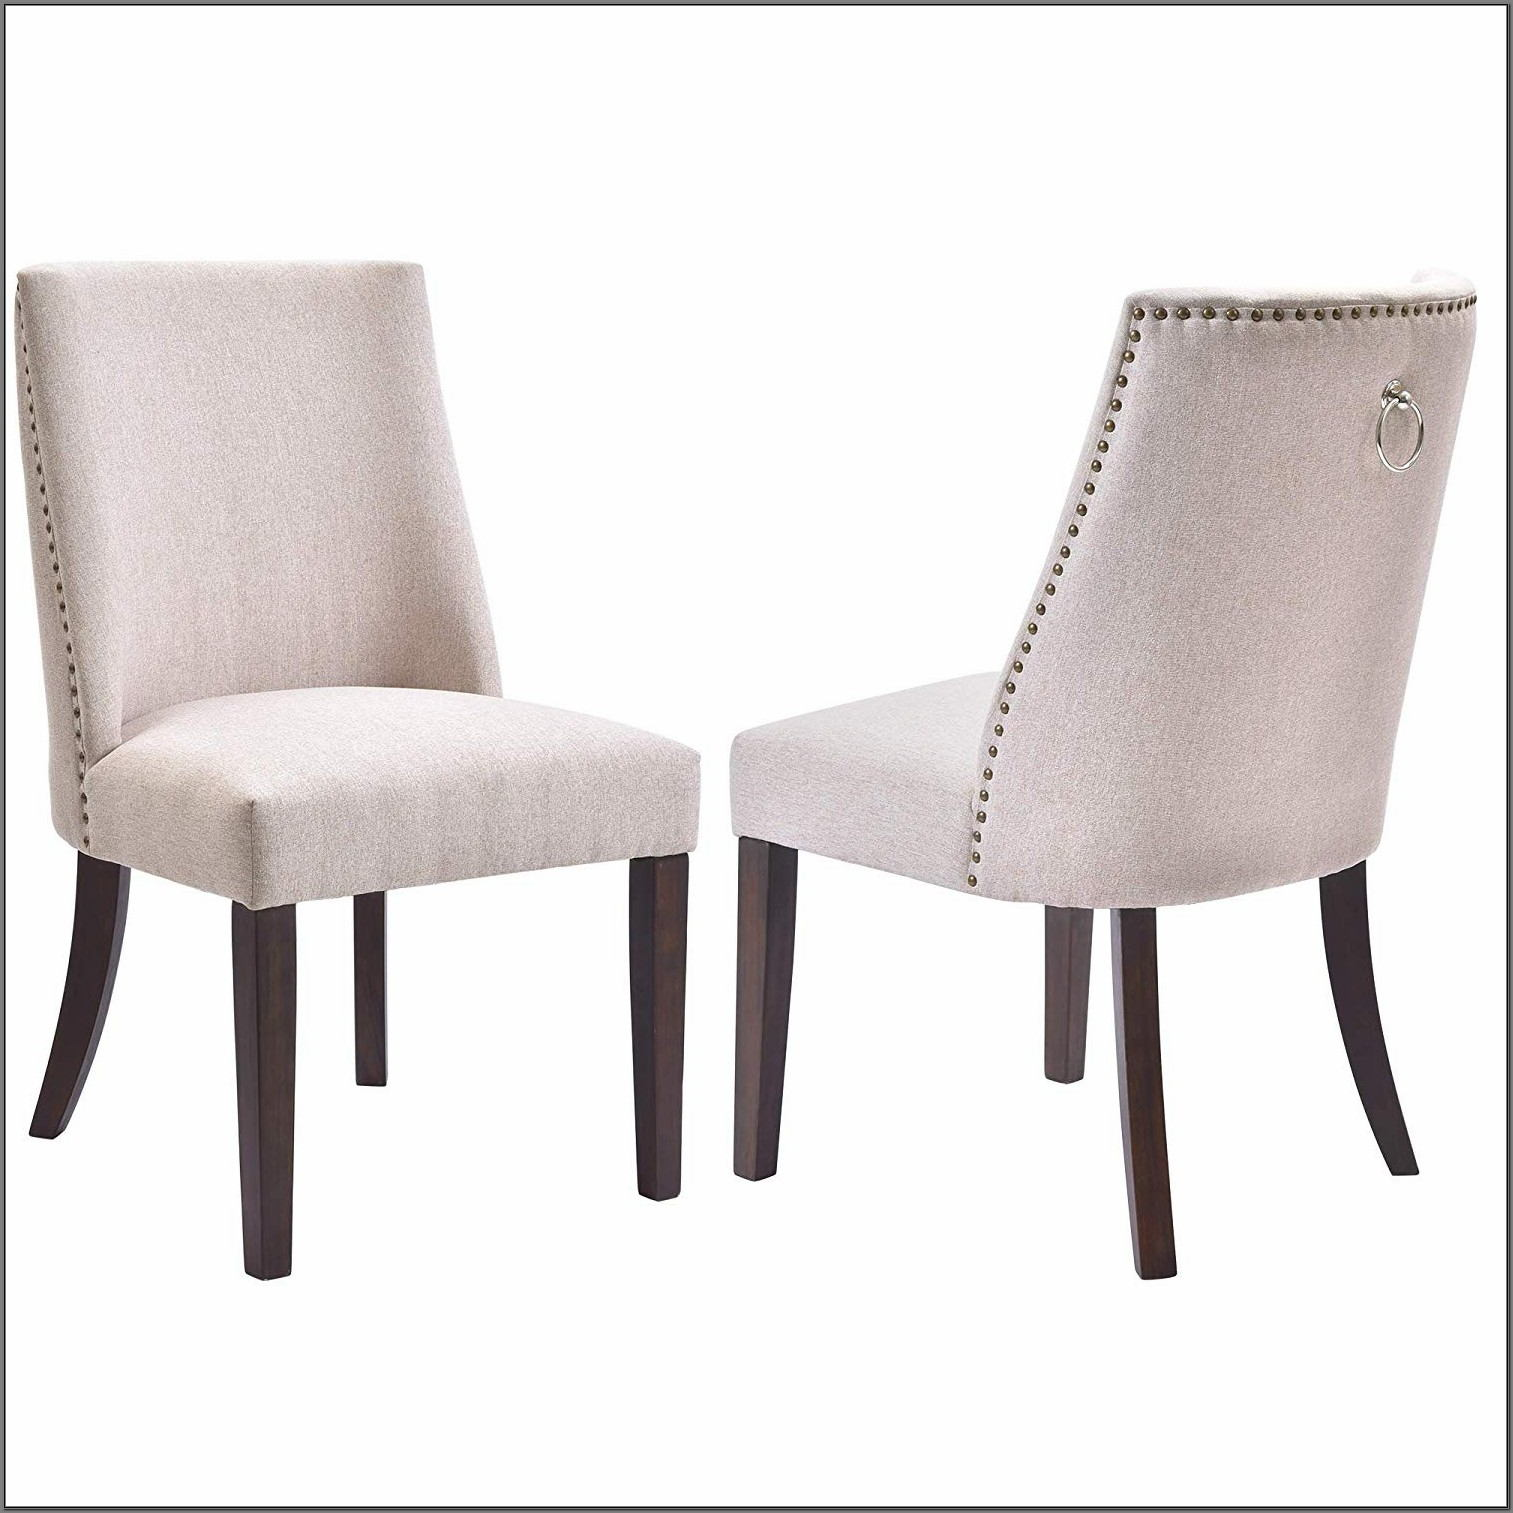 Upholstery Foam For Dining Room Chairs